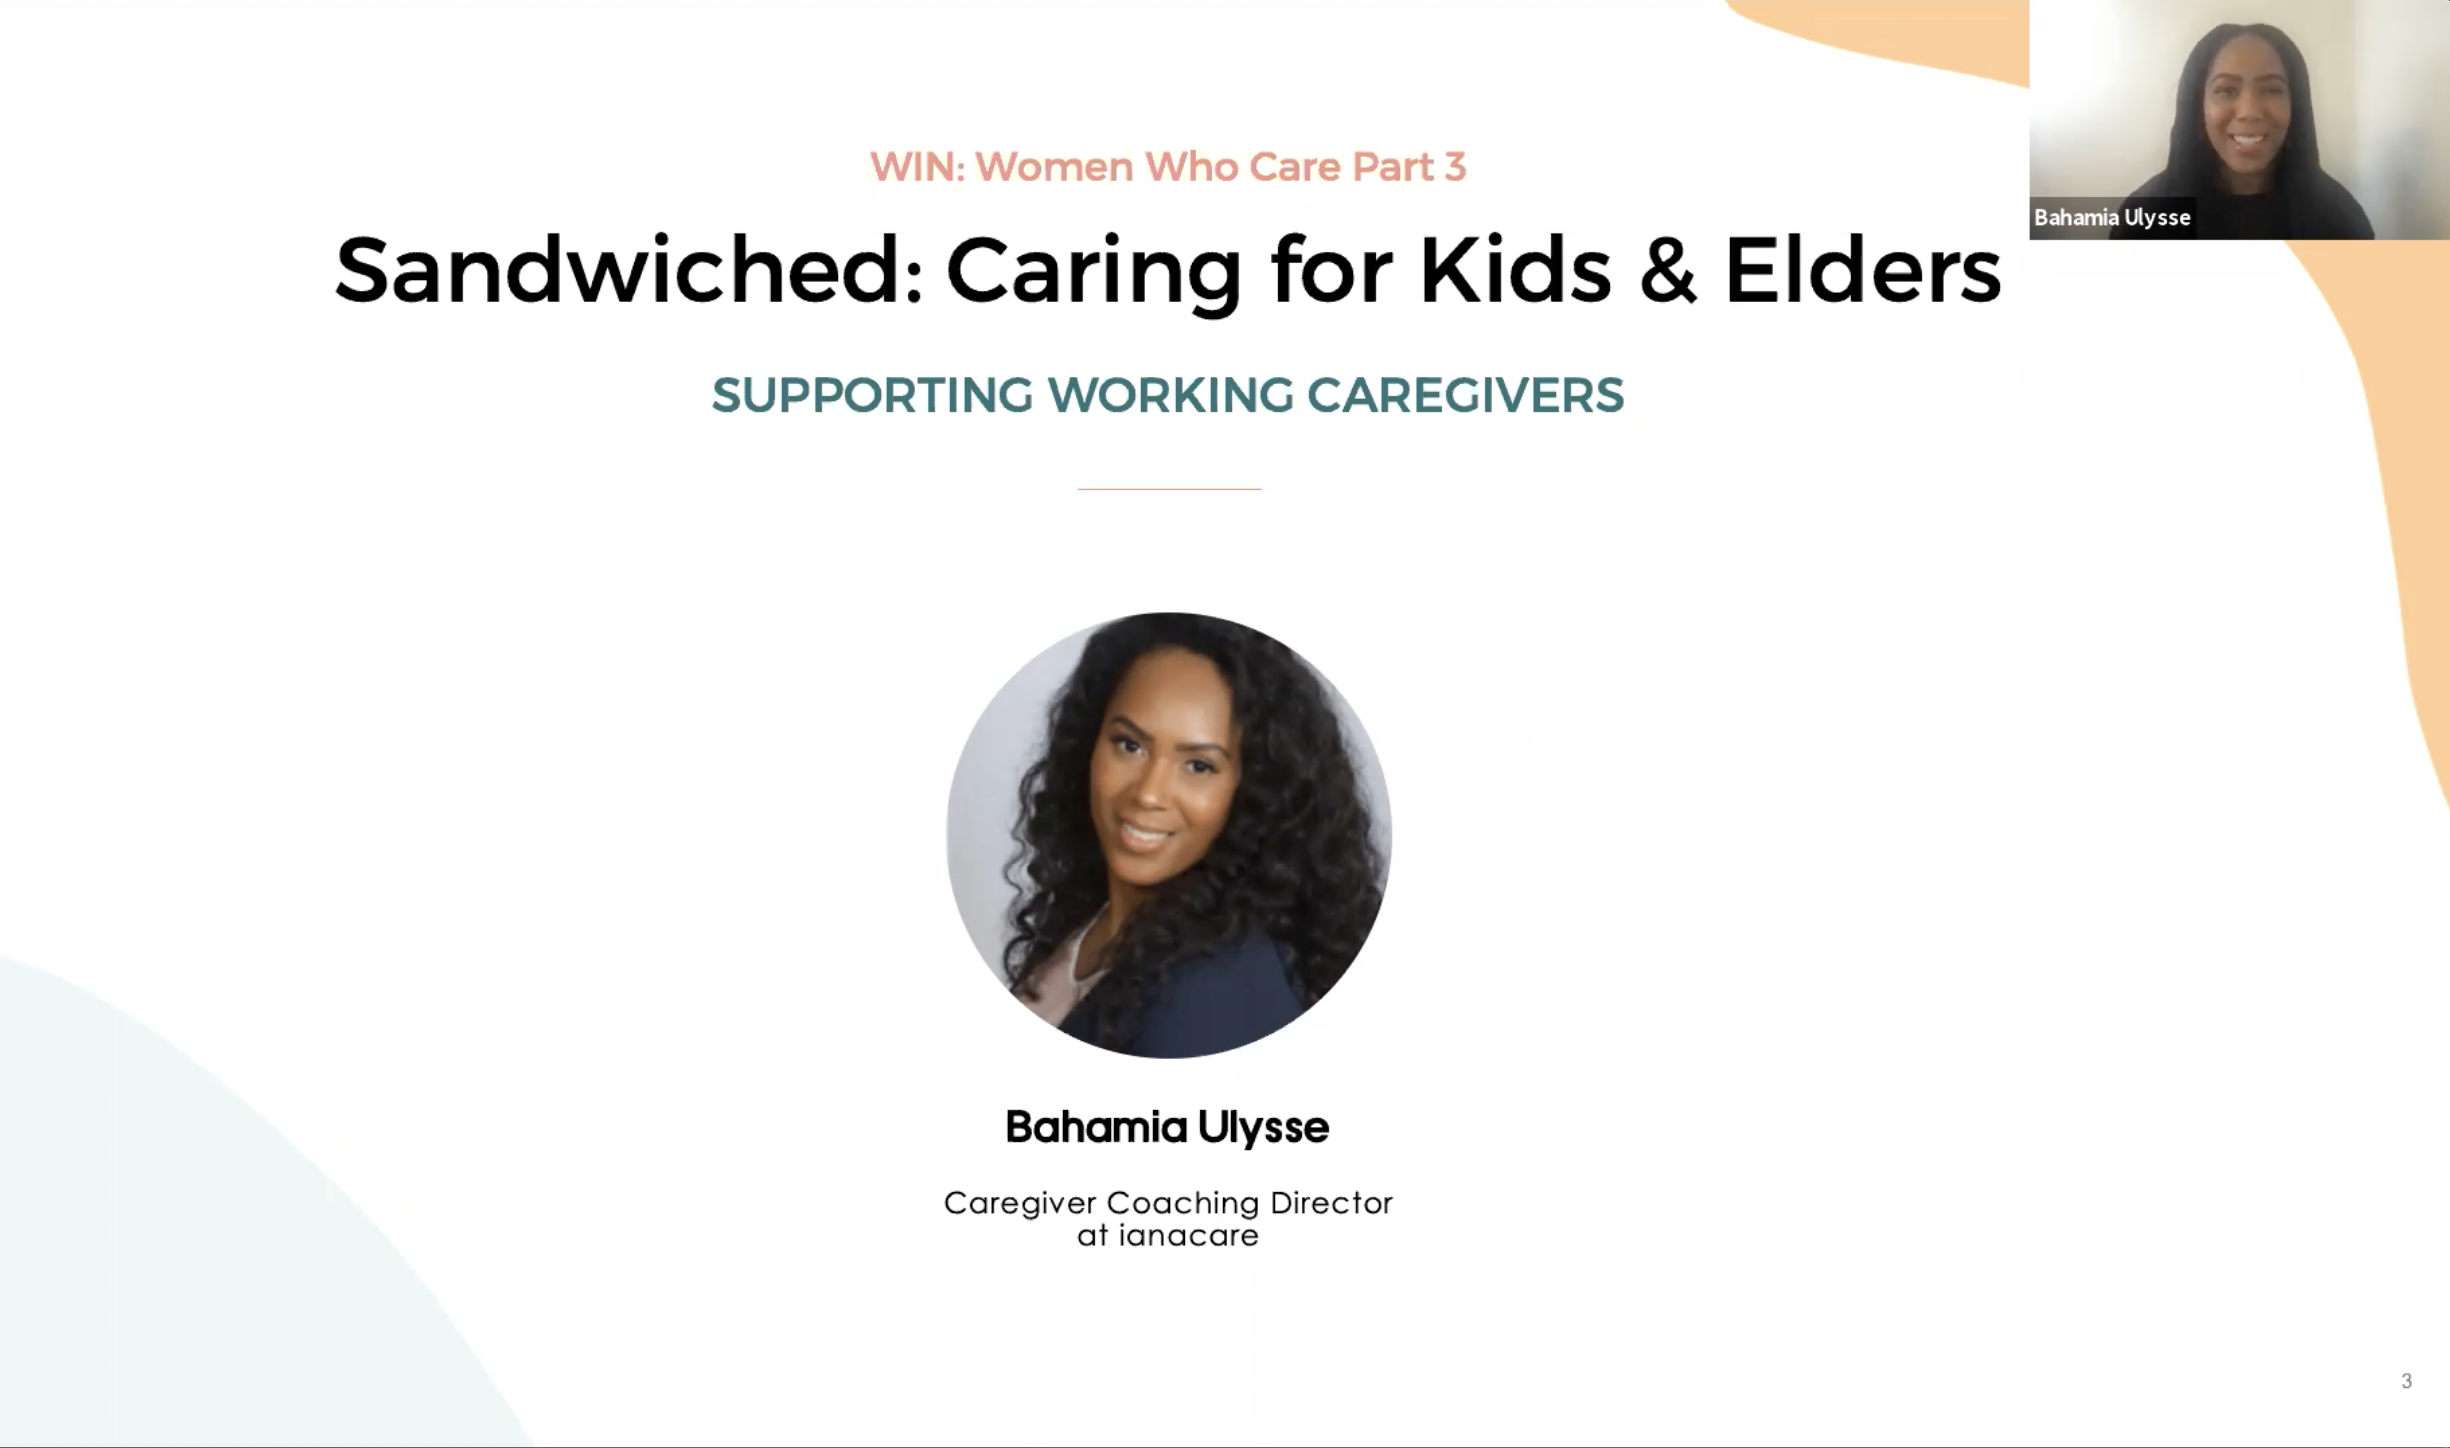 Watch: WIN Caregiving Series - Sandwiched - Caring for Kids & Elders